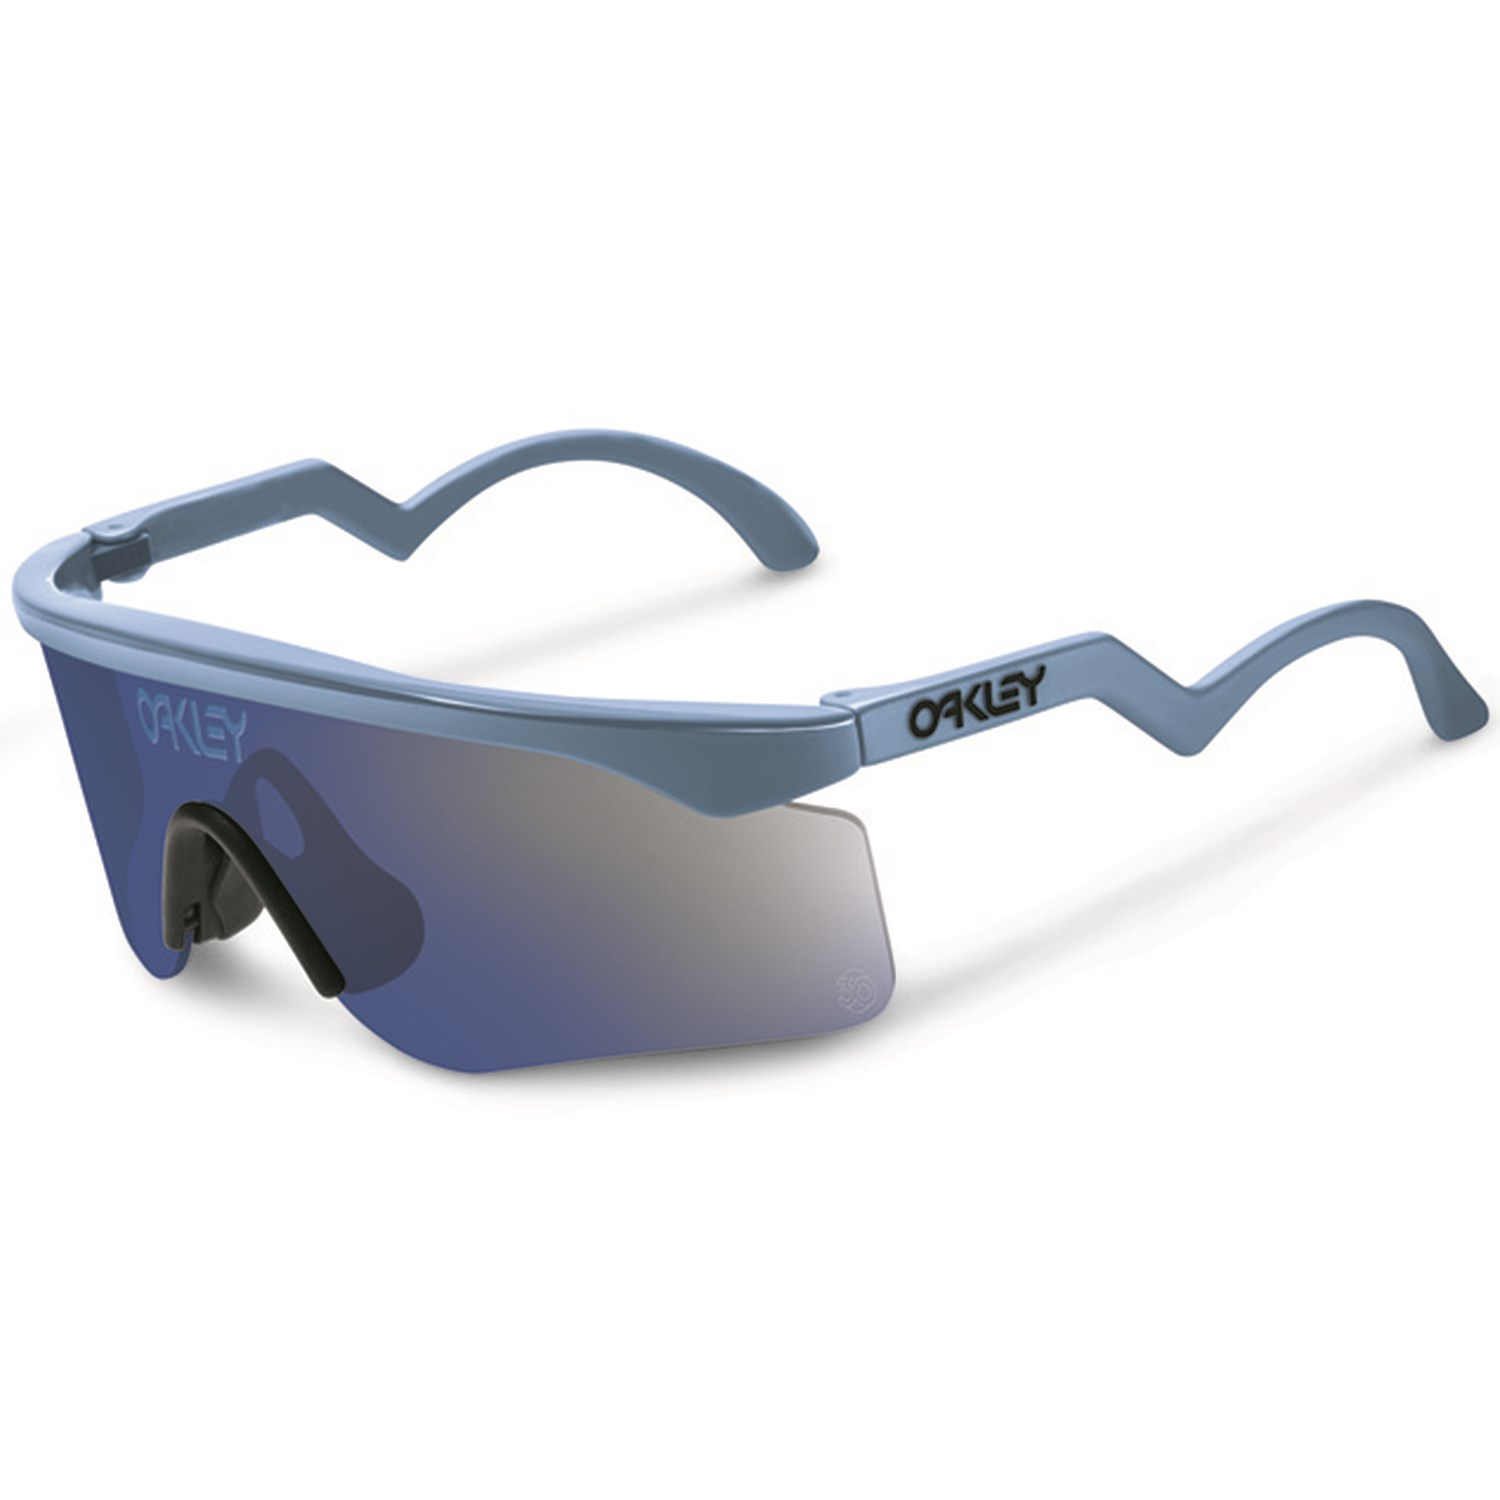 clearance oakley sunglasses 0s5v  clearance oakley sunglasses